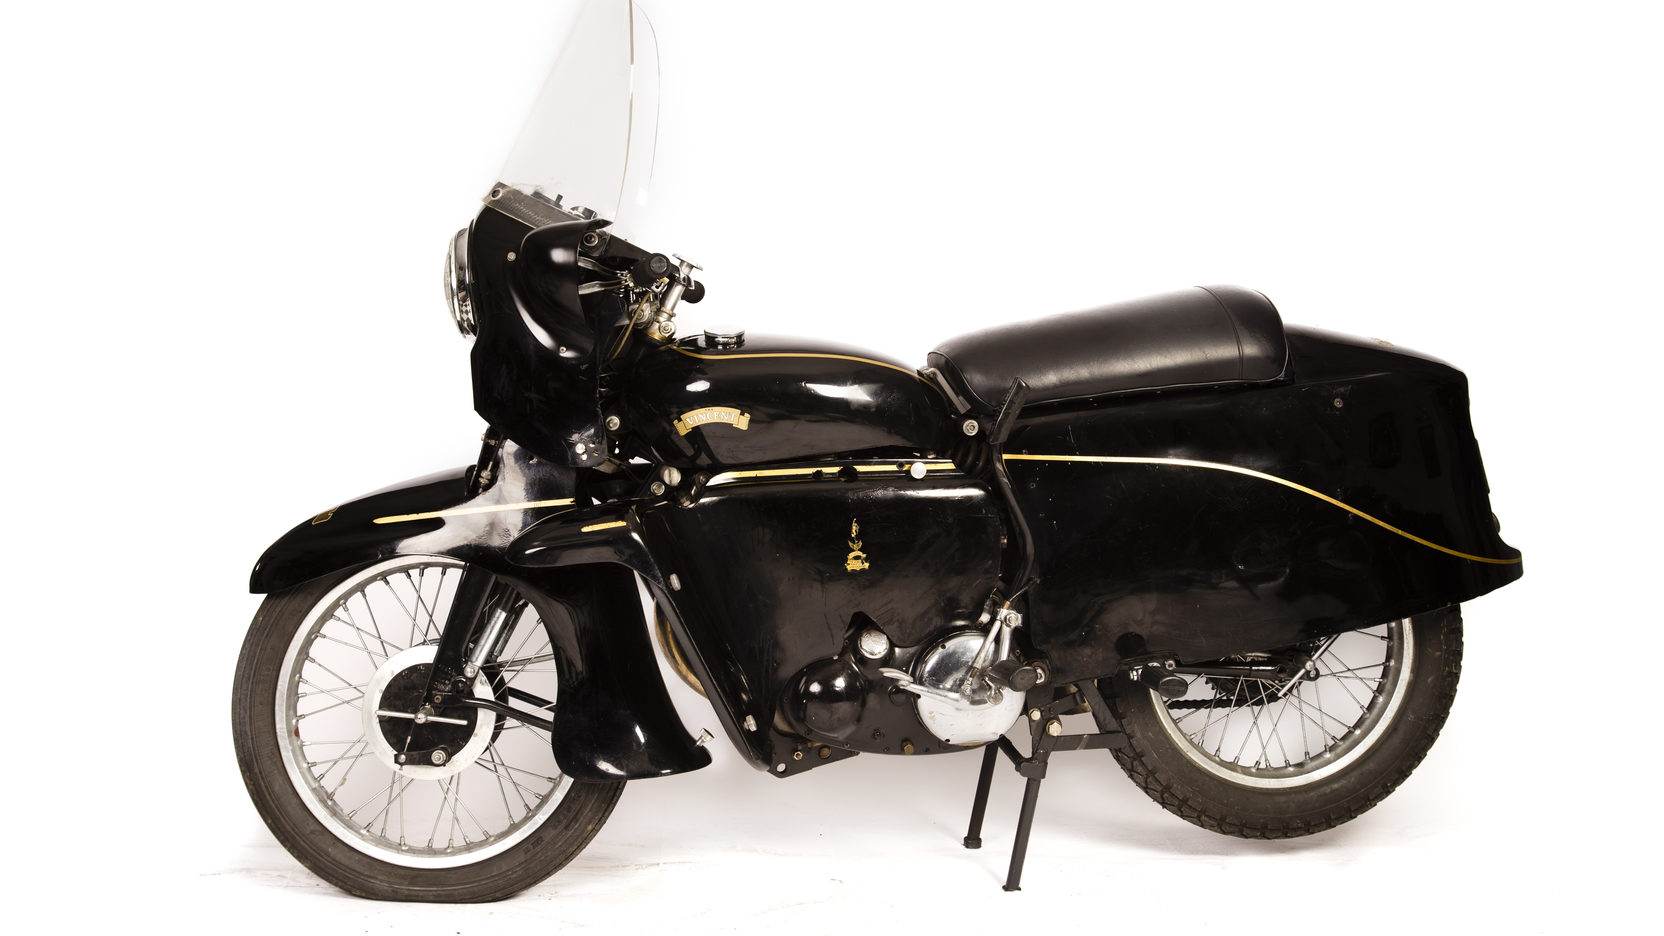 As the most technologically advanced motorcycle to leave the Vincent workshops the Black Prince is arguably the most advanced motorcycle of the fifties.